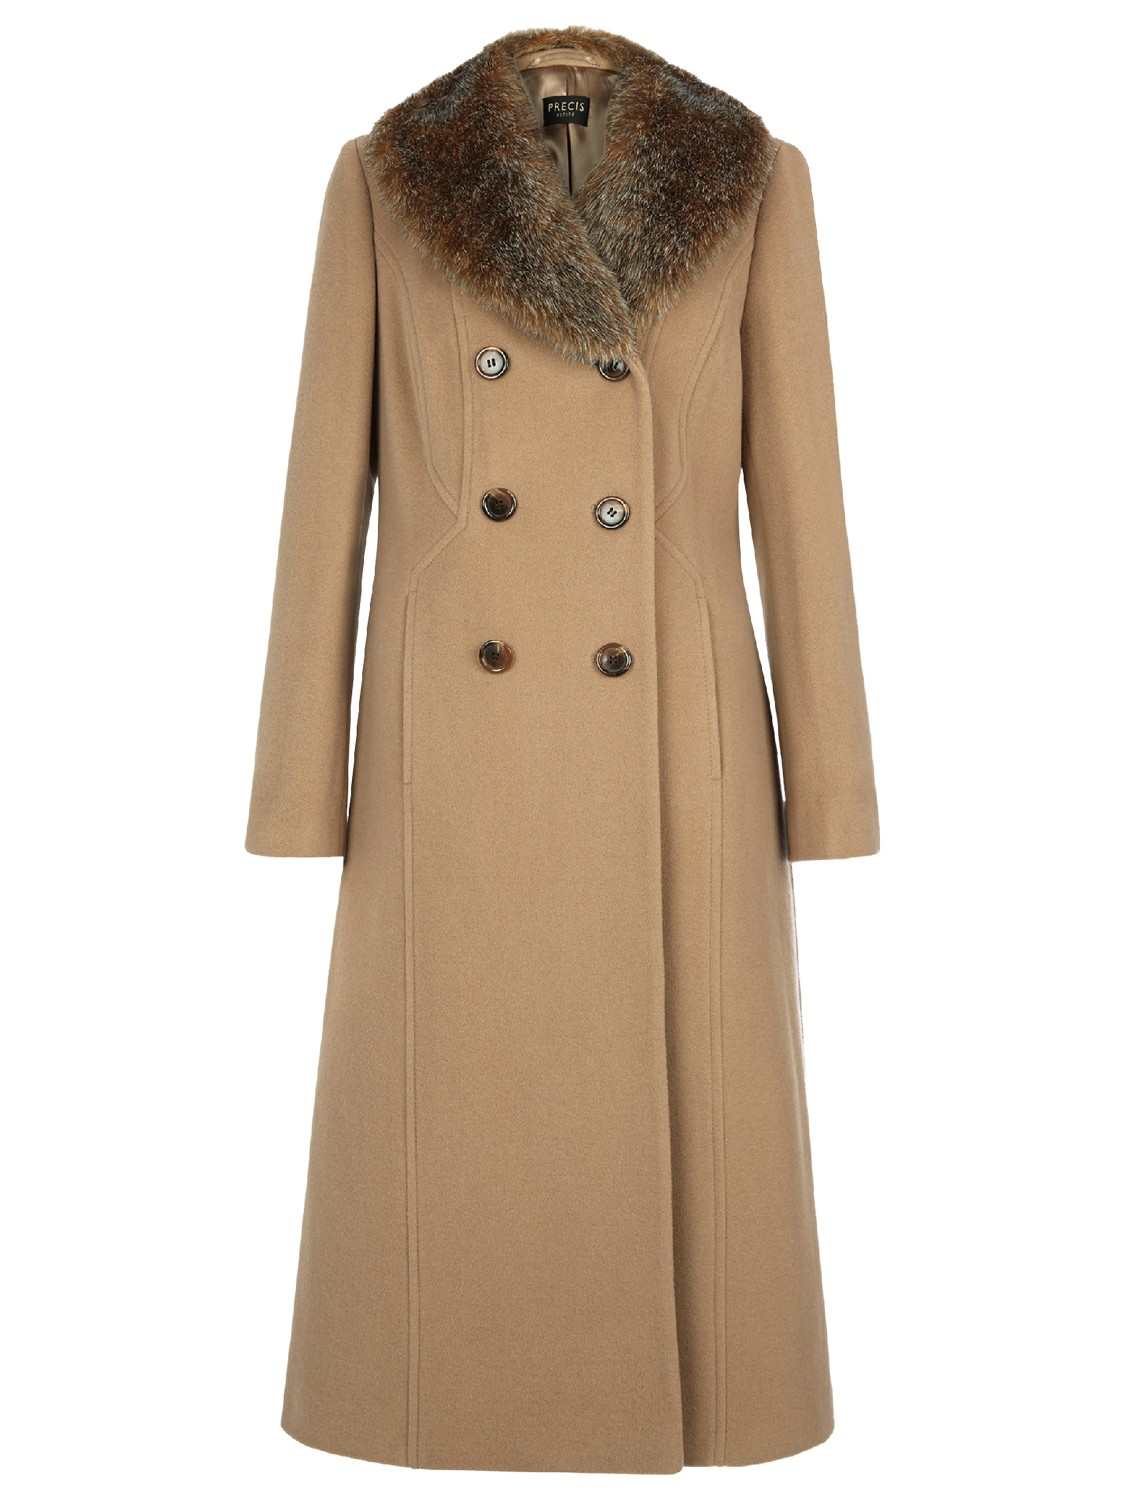 Cropped Jacket and Coat for Petite Women Fur Petite Coat Fashion Looks How to Wear Winter Coat with Volume for Petite Ladies Fur or faux fur coats that add a bit of volume are fine if you are small and petite, as long as they fit well and aren't too long.